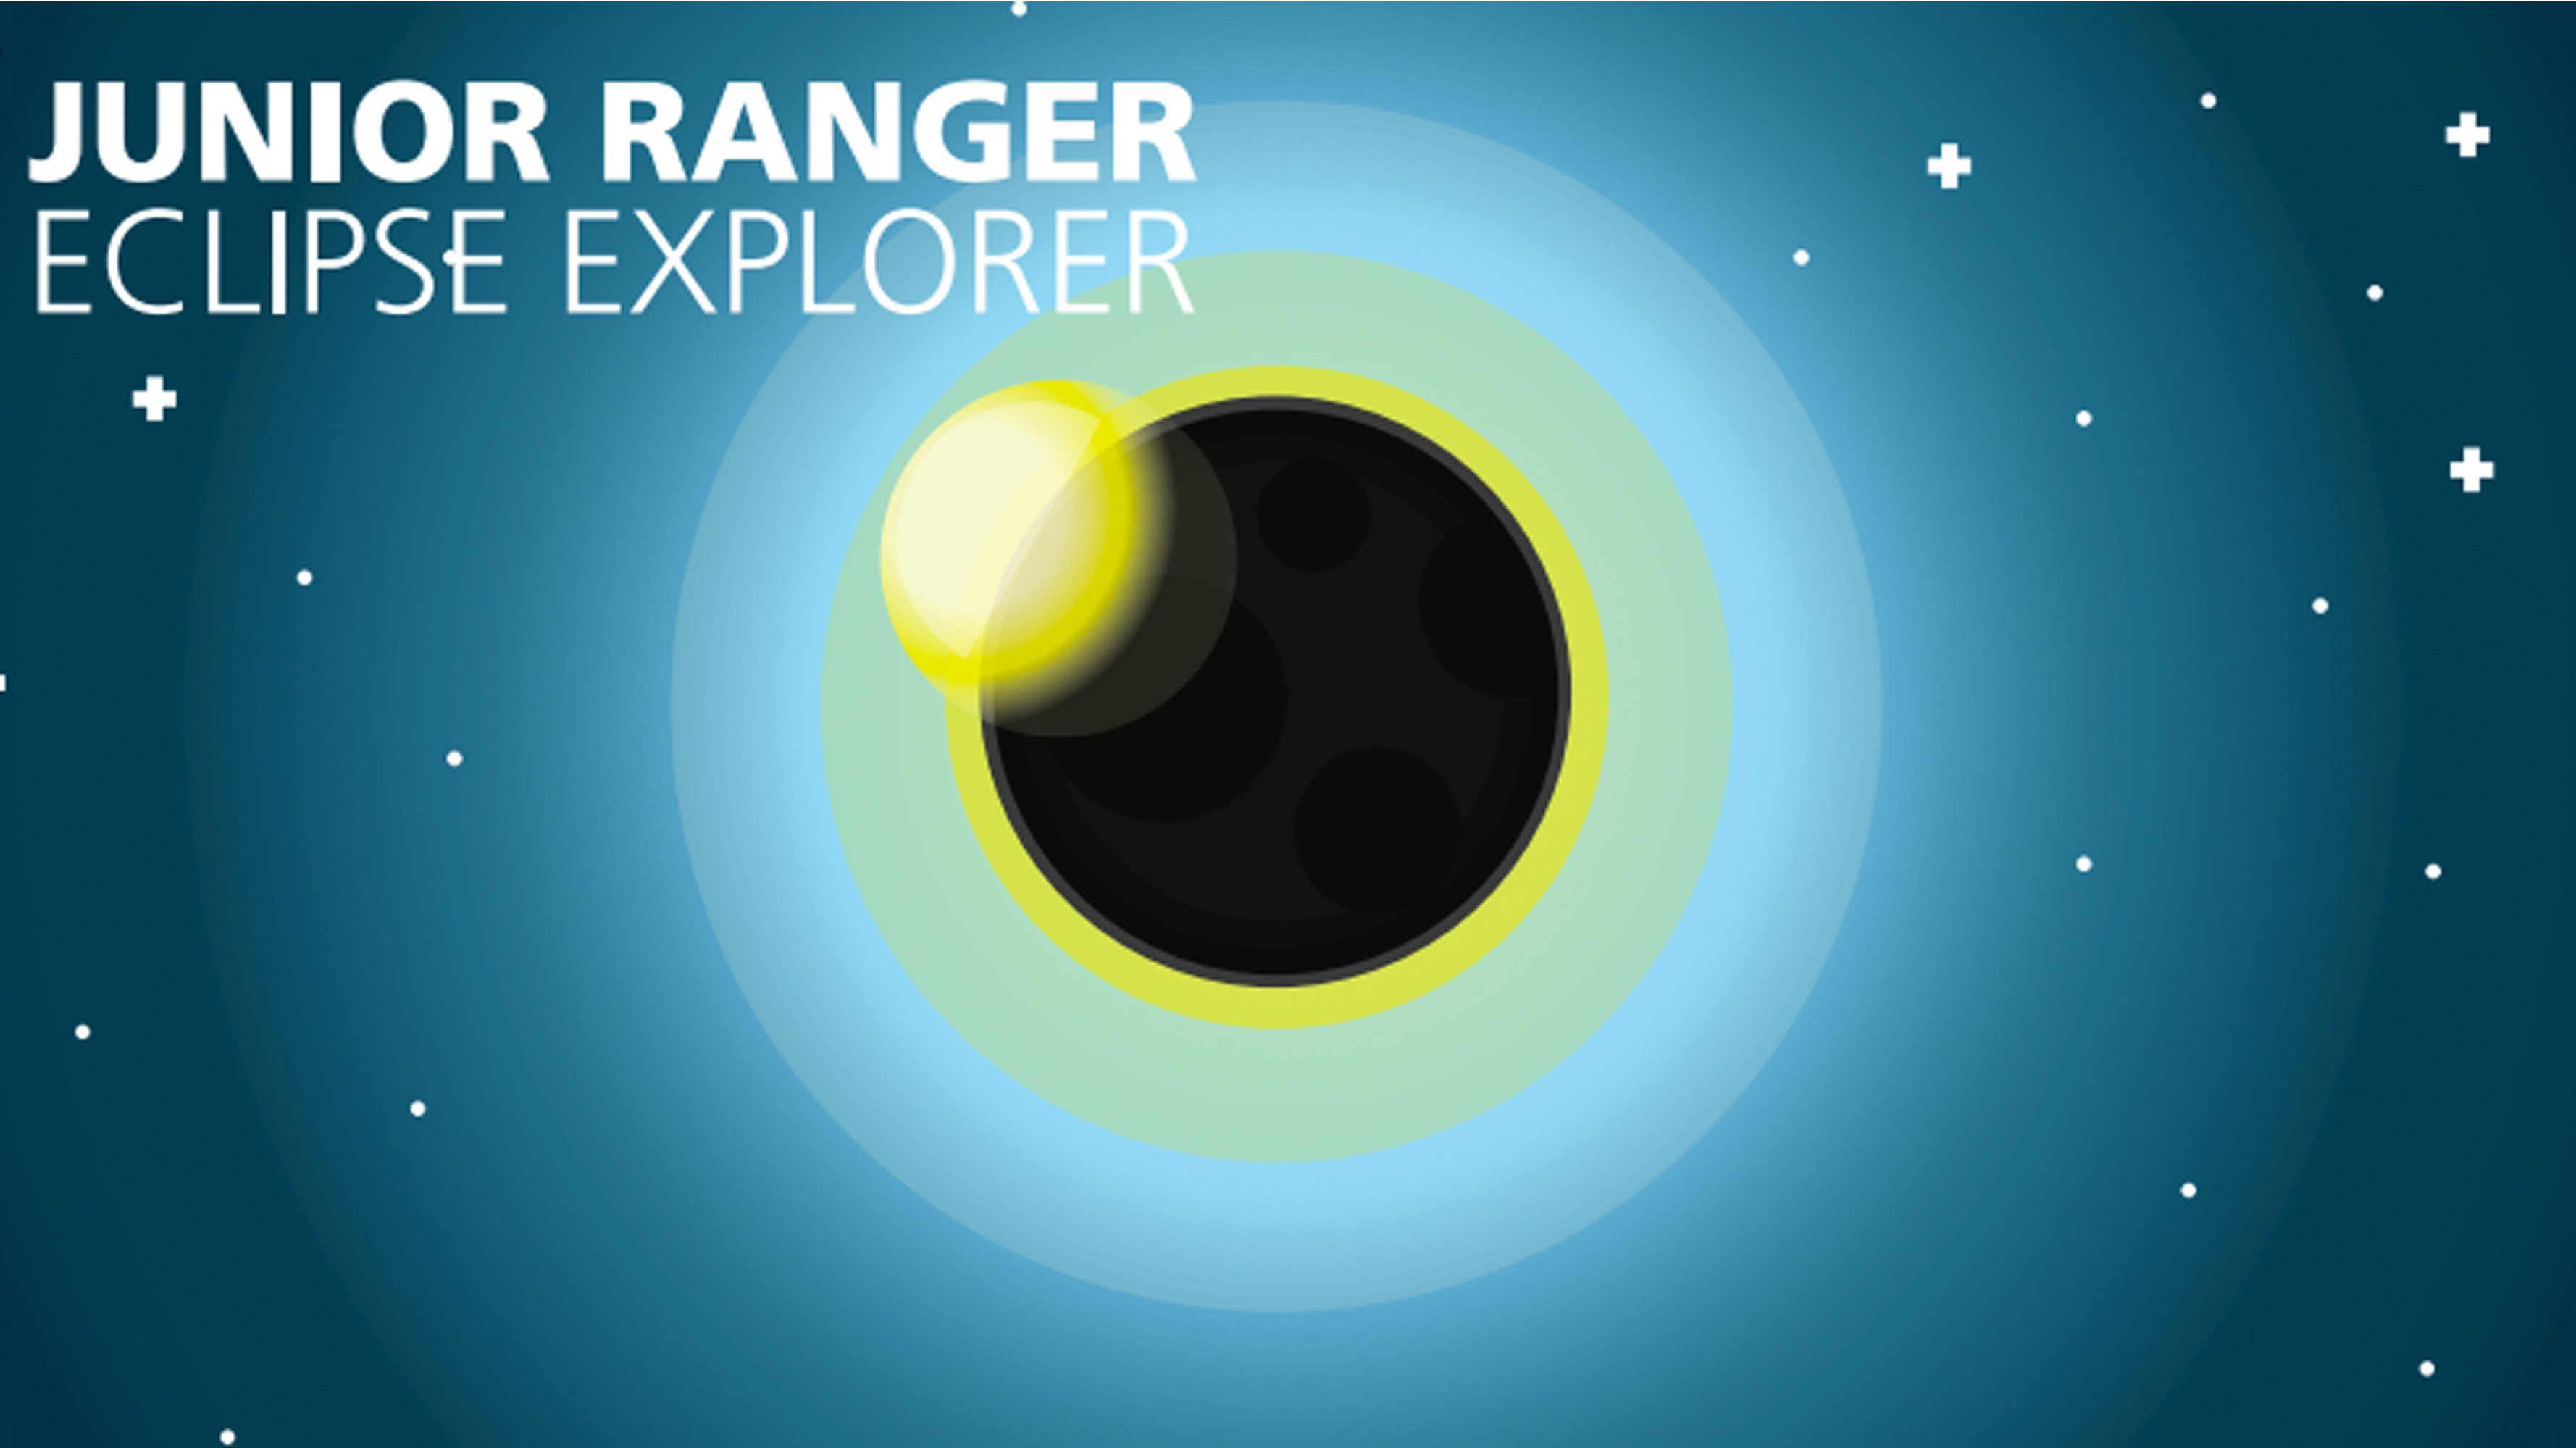 Earn Your Eclipse Explorer Badge!